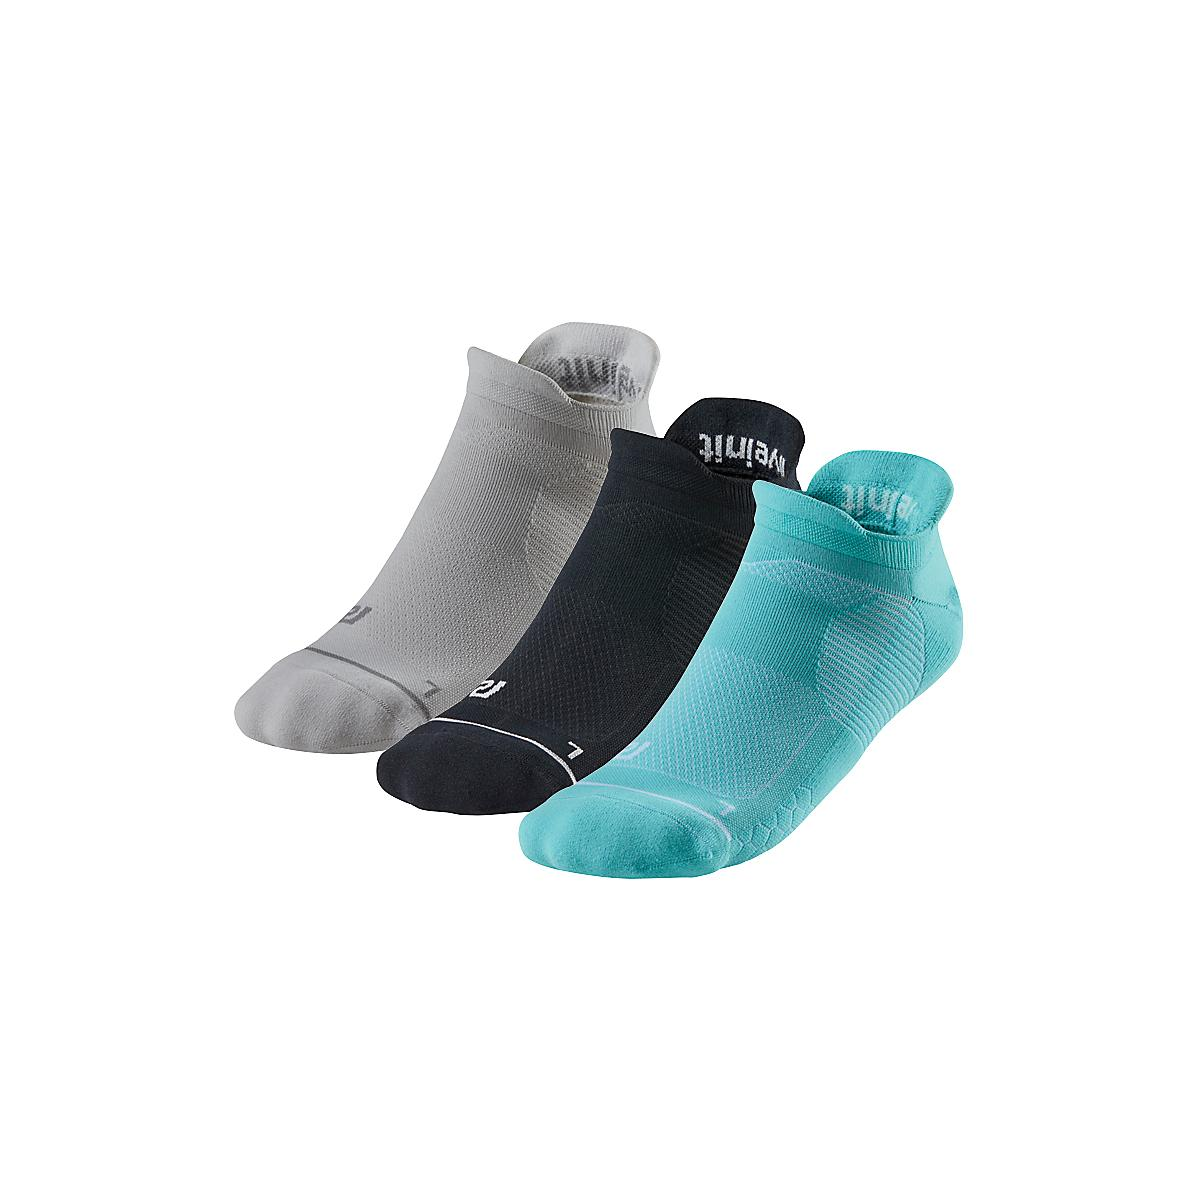 R-Gear�Unstoppable Sock 3 pack Thin Cushion No Show Tab